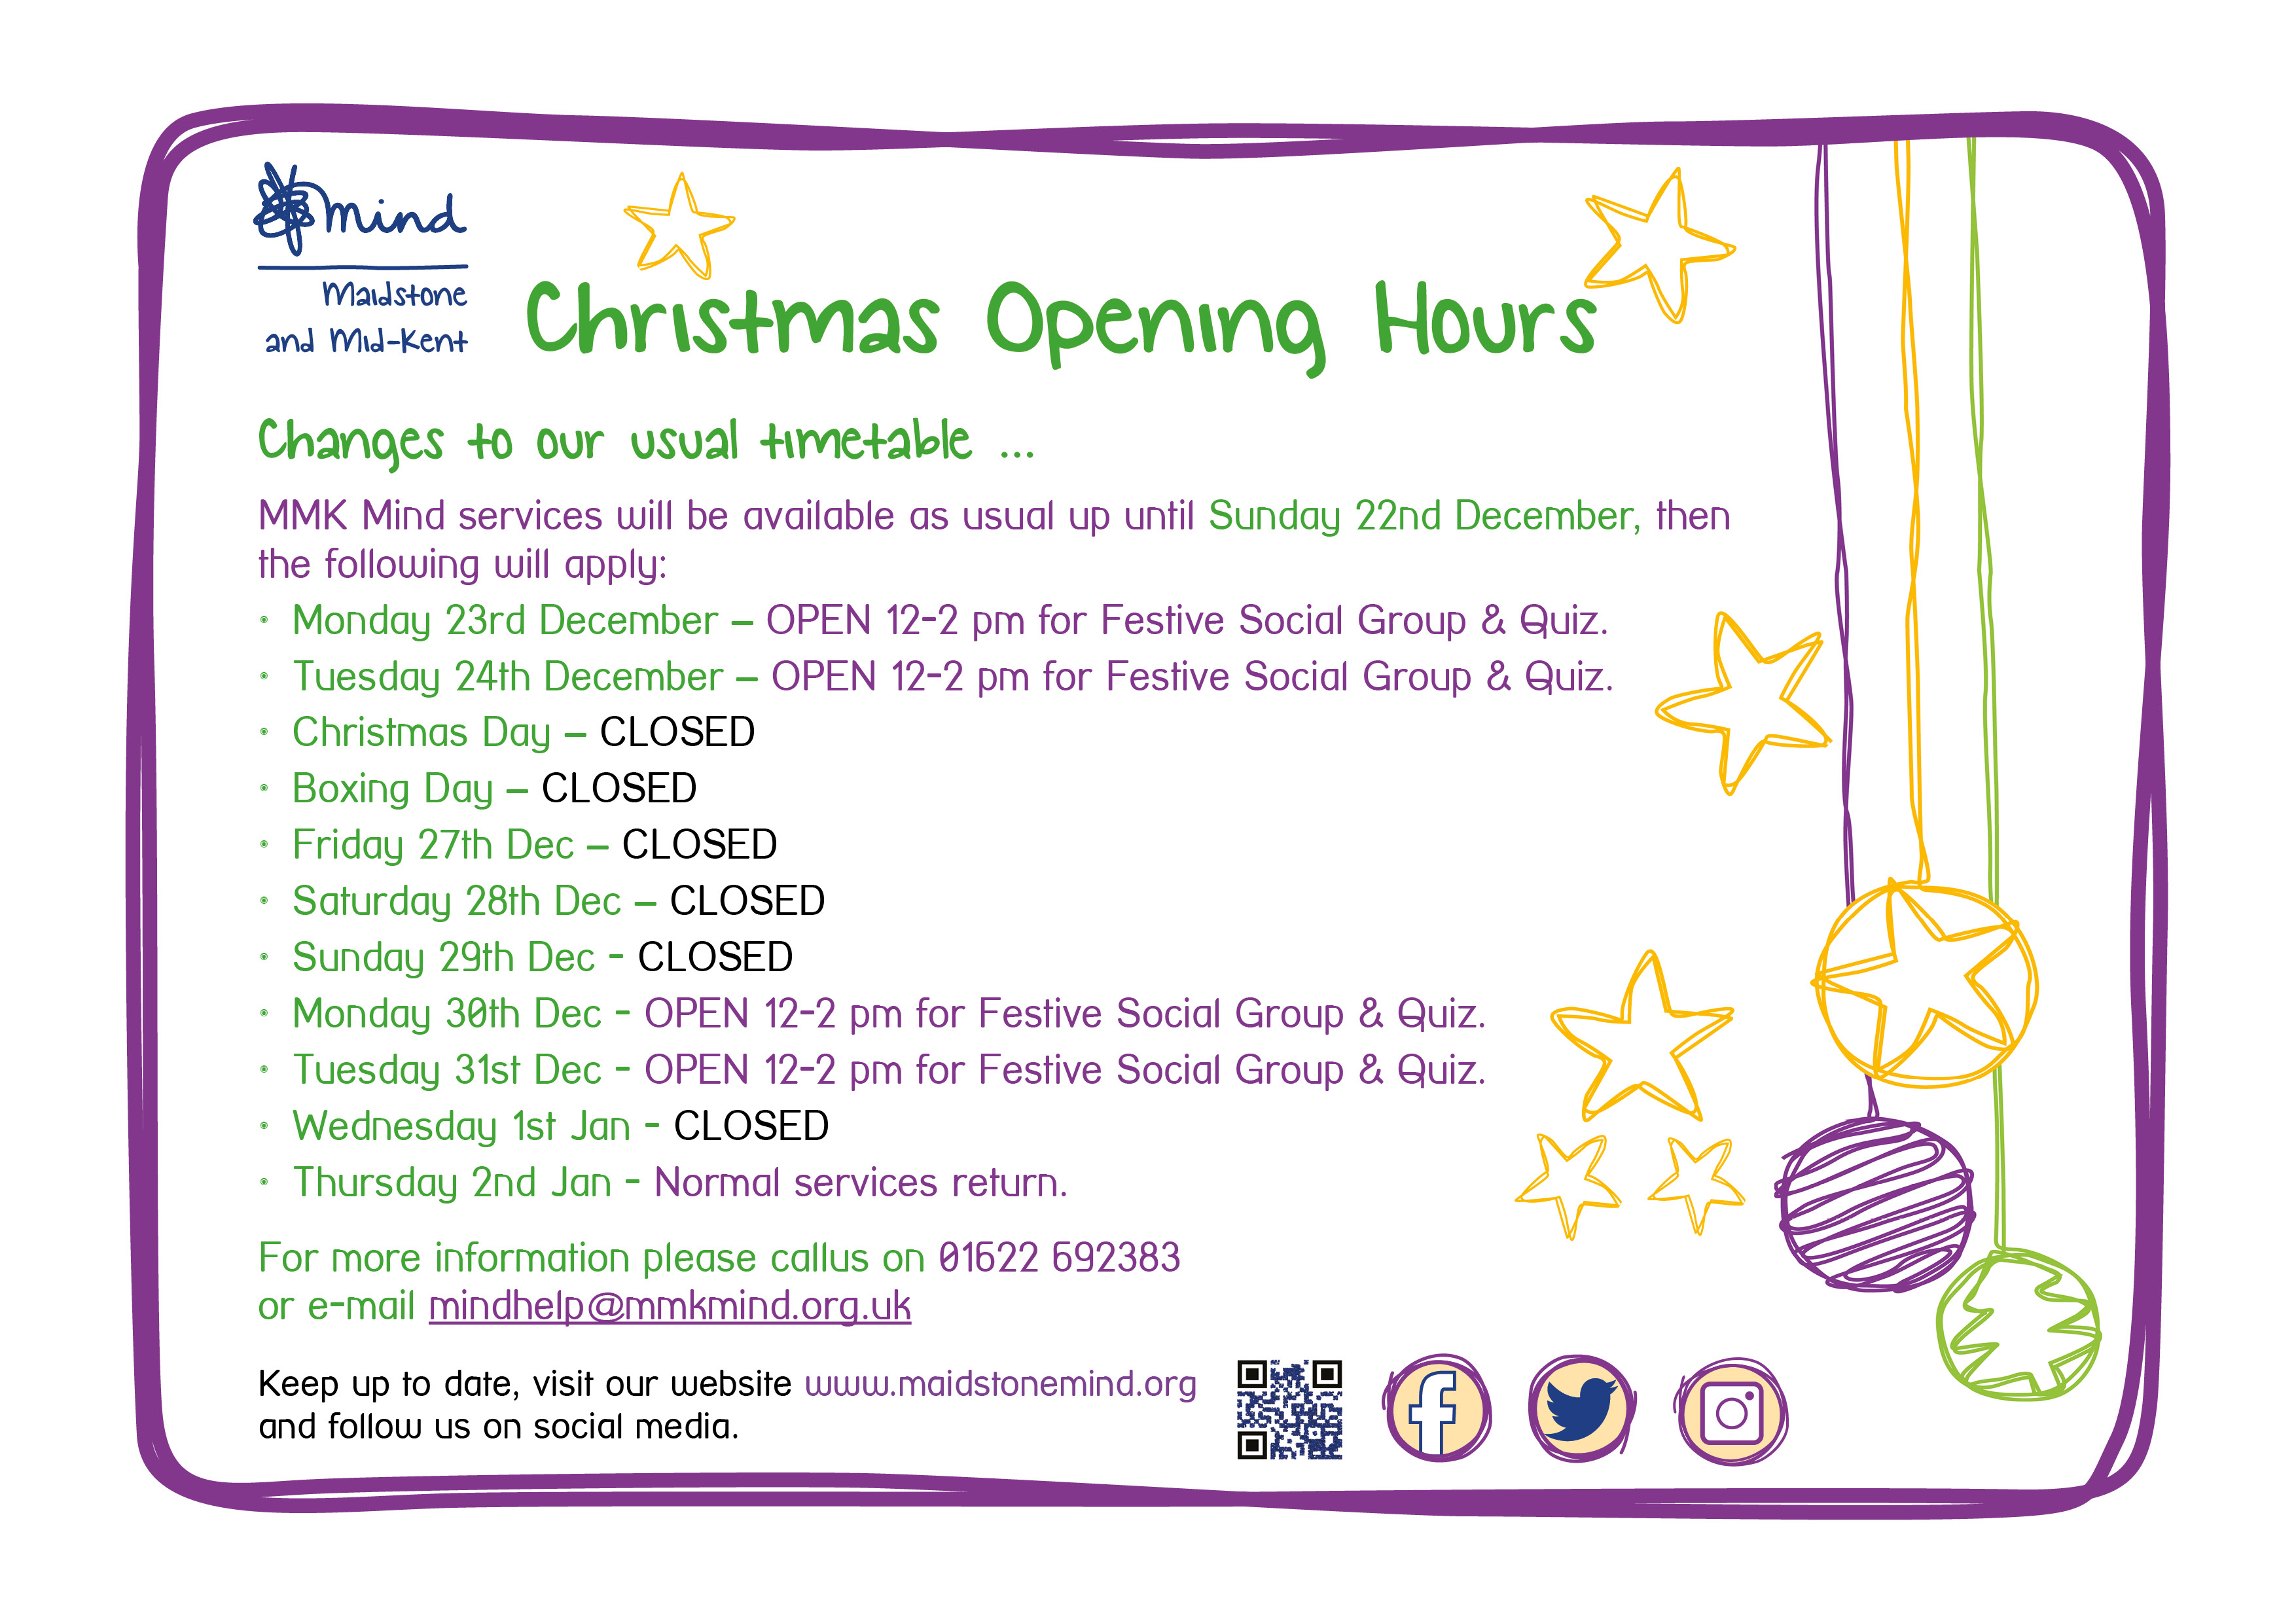 Christmas Opening Hours. Changes to our usual timetable … MMK Mind services will be available as usual up until Sunday 22nd December, then the following will apply: Monday 23rd December – OPEN 12-2 pm for Festive Social Group & Quiz. Tuesday 24th December – OPEN 12-2 pm for Festive Social Group & Quiz. Christmas Day – CLOSED Boxing Day – CLOSED Friday 27th Dec – CLOSED Saturday 28th Dec – CLOSED Sunday 29th Dec - CLOSED Monday 30th Dec - OPEN 12-2 pm for Festive Social Group & Quiz. Tuesday 31st Dec - OPEN 12-2 pm for Festive Social Group & Quiz. Wednesday 1st Jan - CLOSED Thursday 2nd Jan - Normal services return. For more information please callus on 01622 692383 or e-mail mindhelp@mmkmind.org.uk.  Keep up to date, visit our website www.maidstonemind.org and follow us on social media.